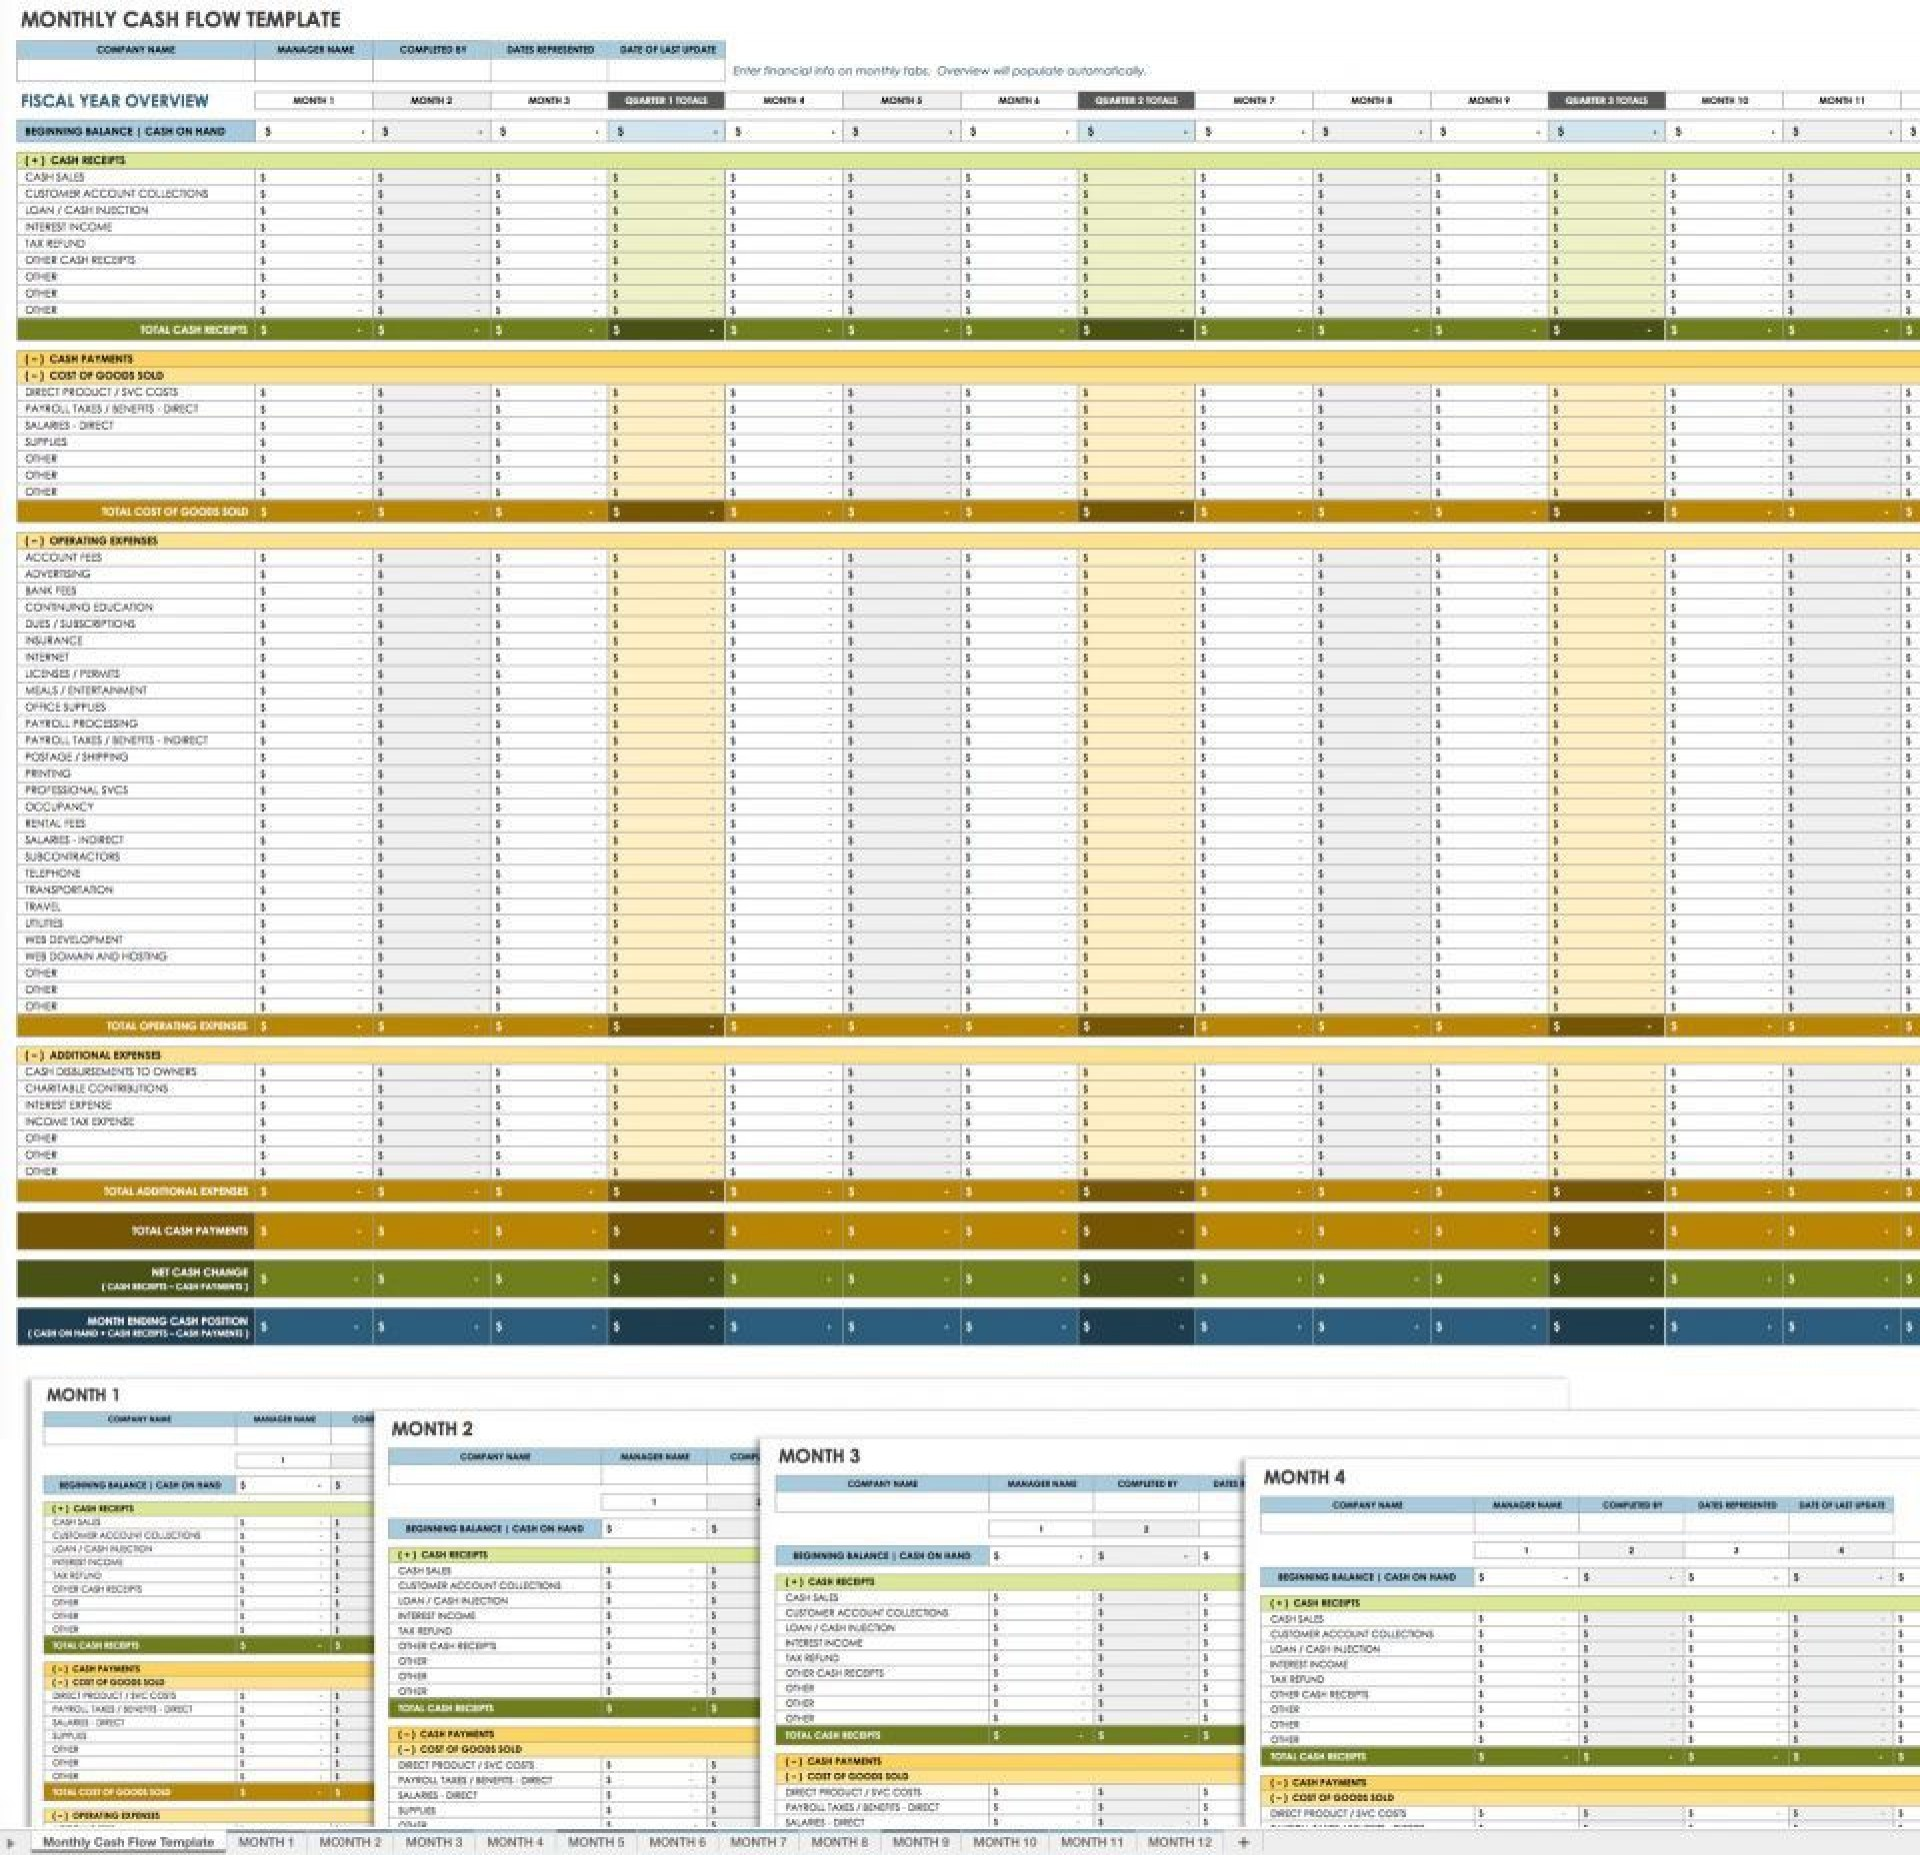 006 Impressive Cash Flow Template Excel Concept  Personal Uk Construction Forecast Simple Weekly1920